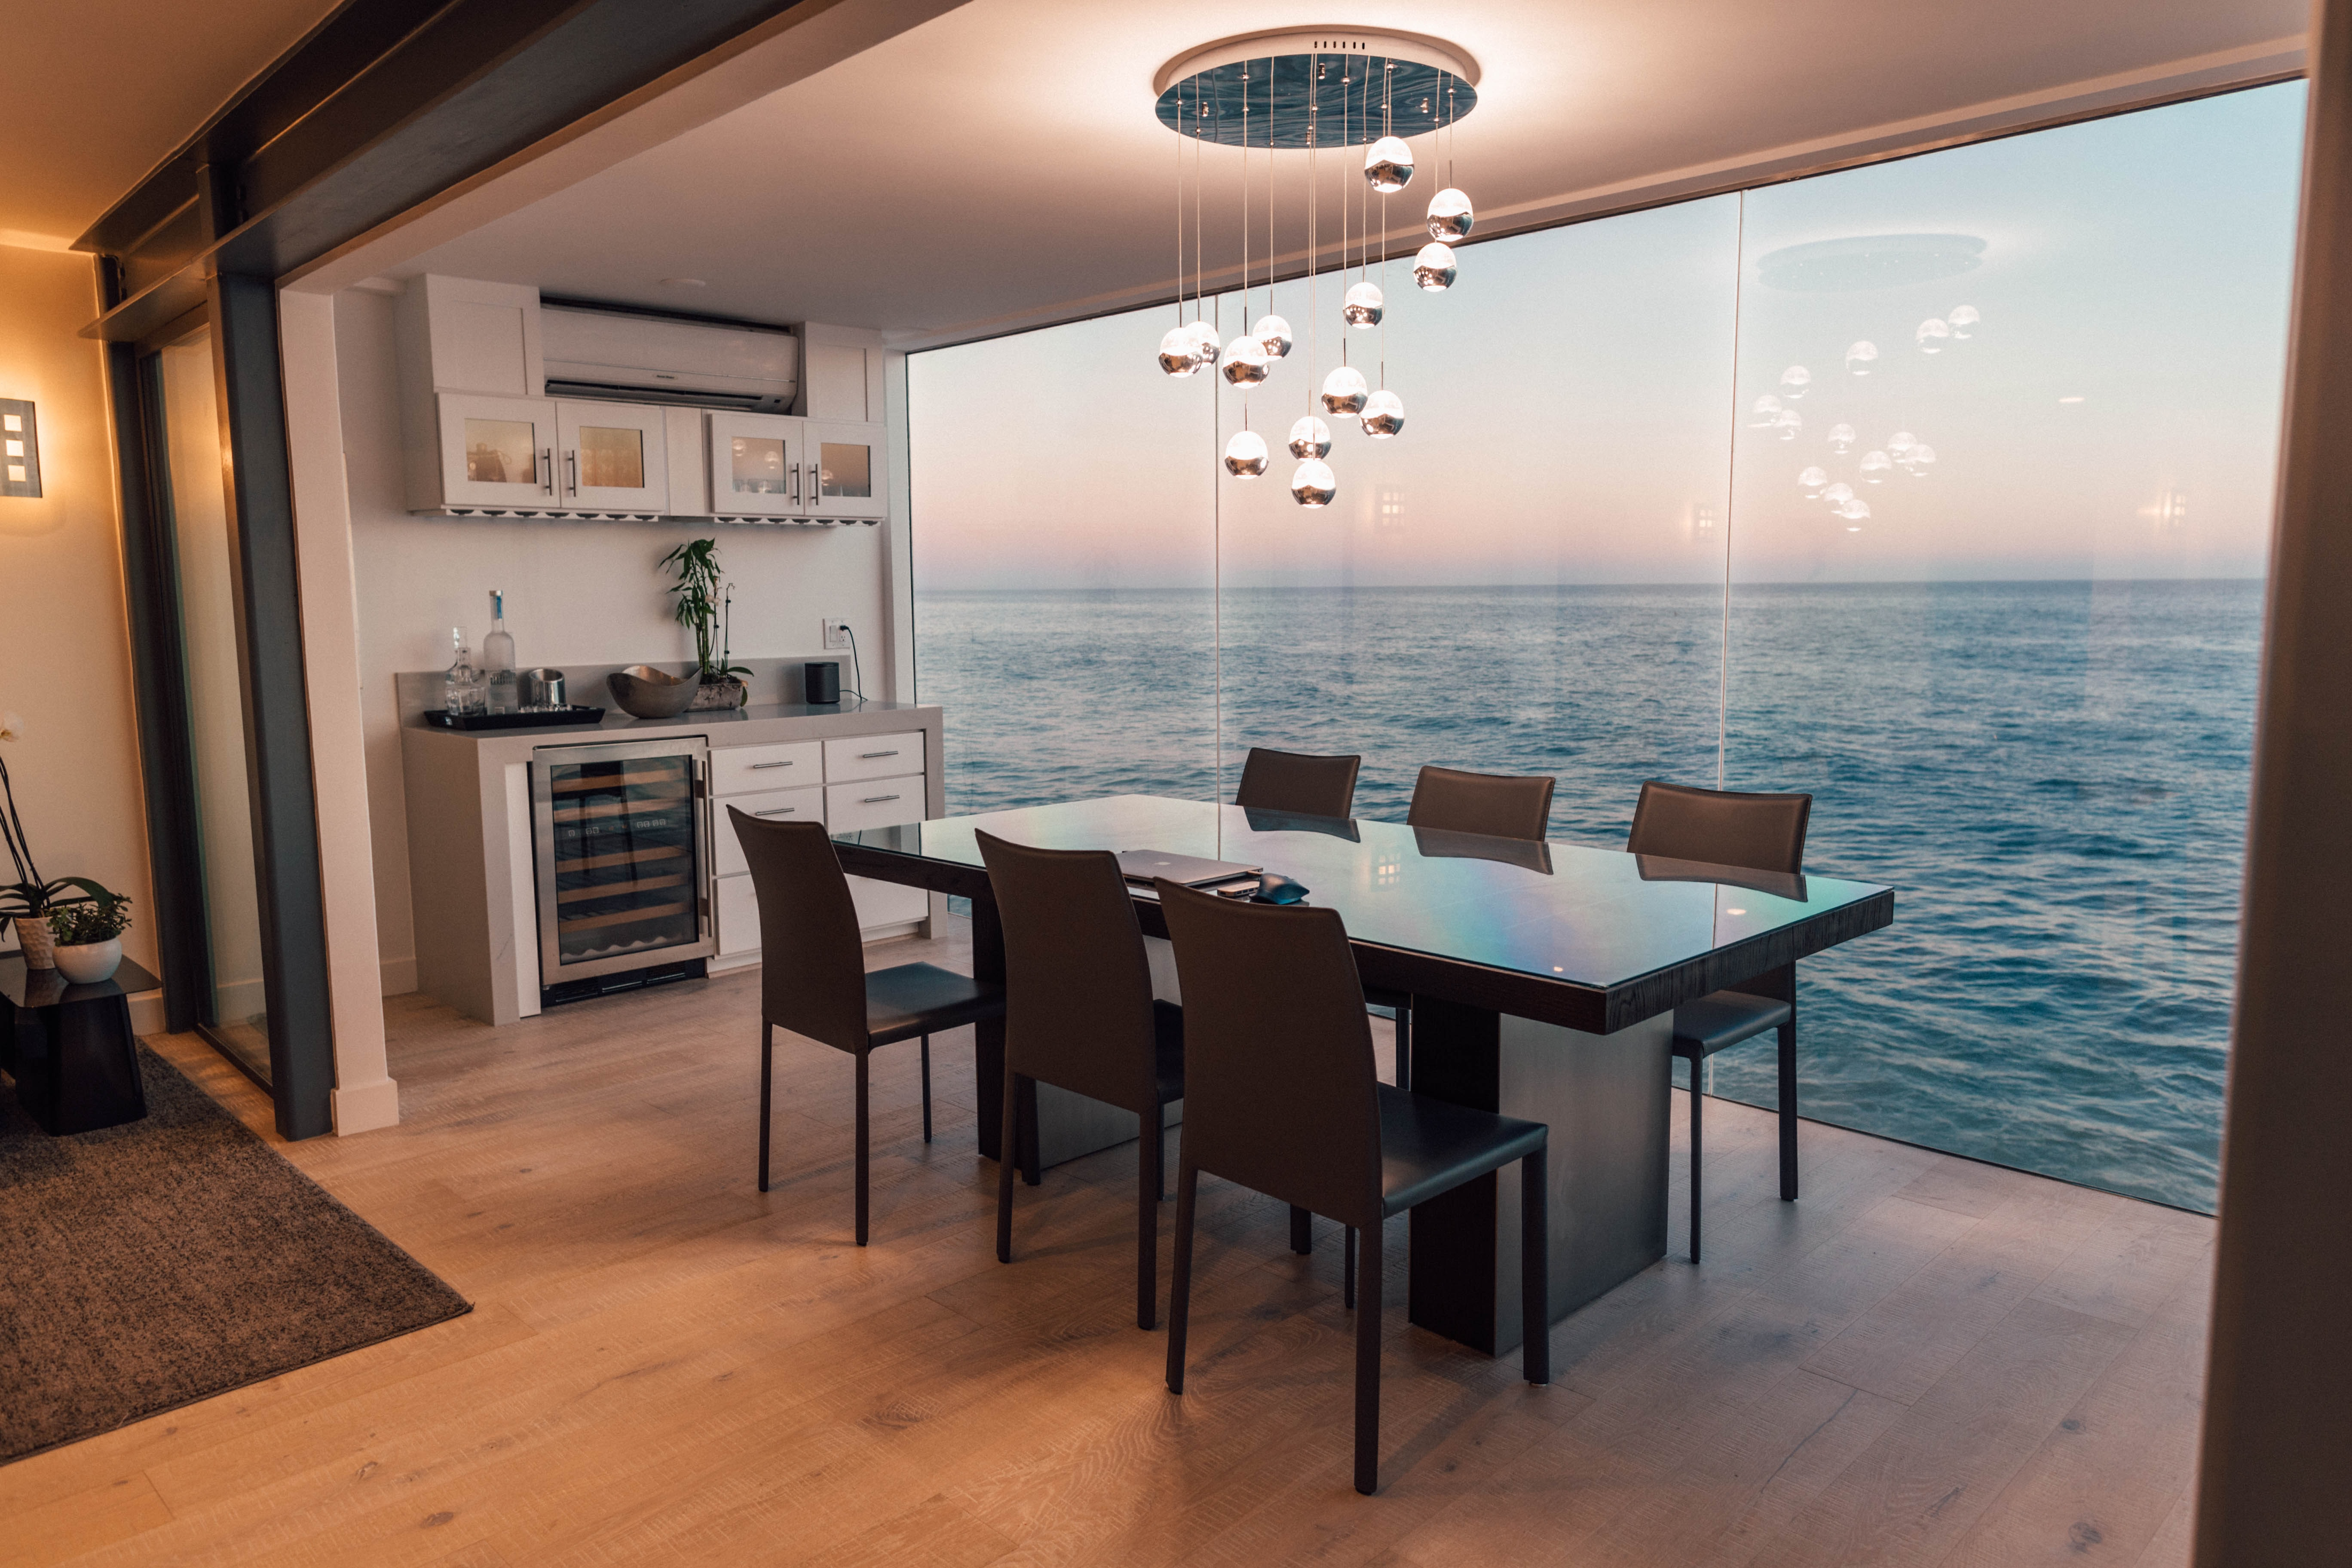 12 Luxury Dining Room Ideas And Tips For Decorating Yours